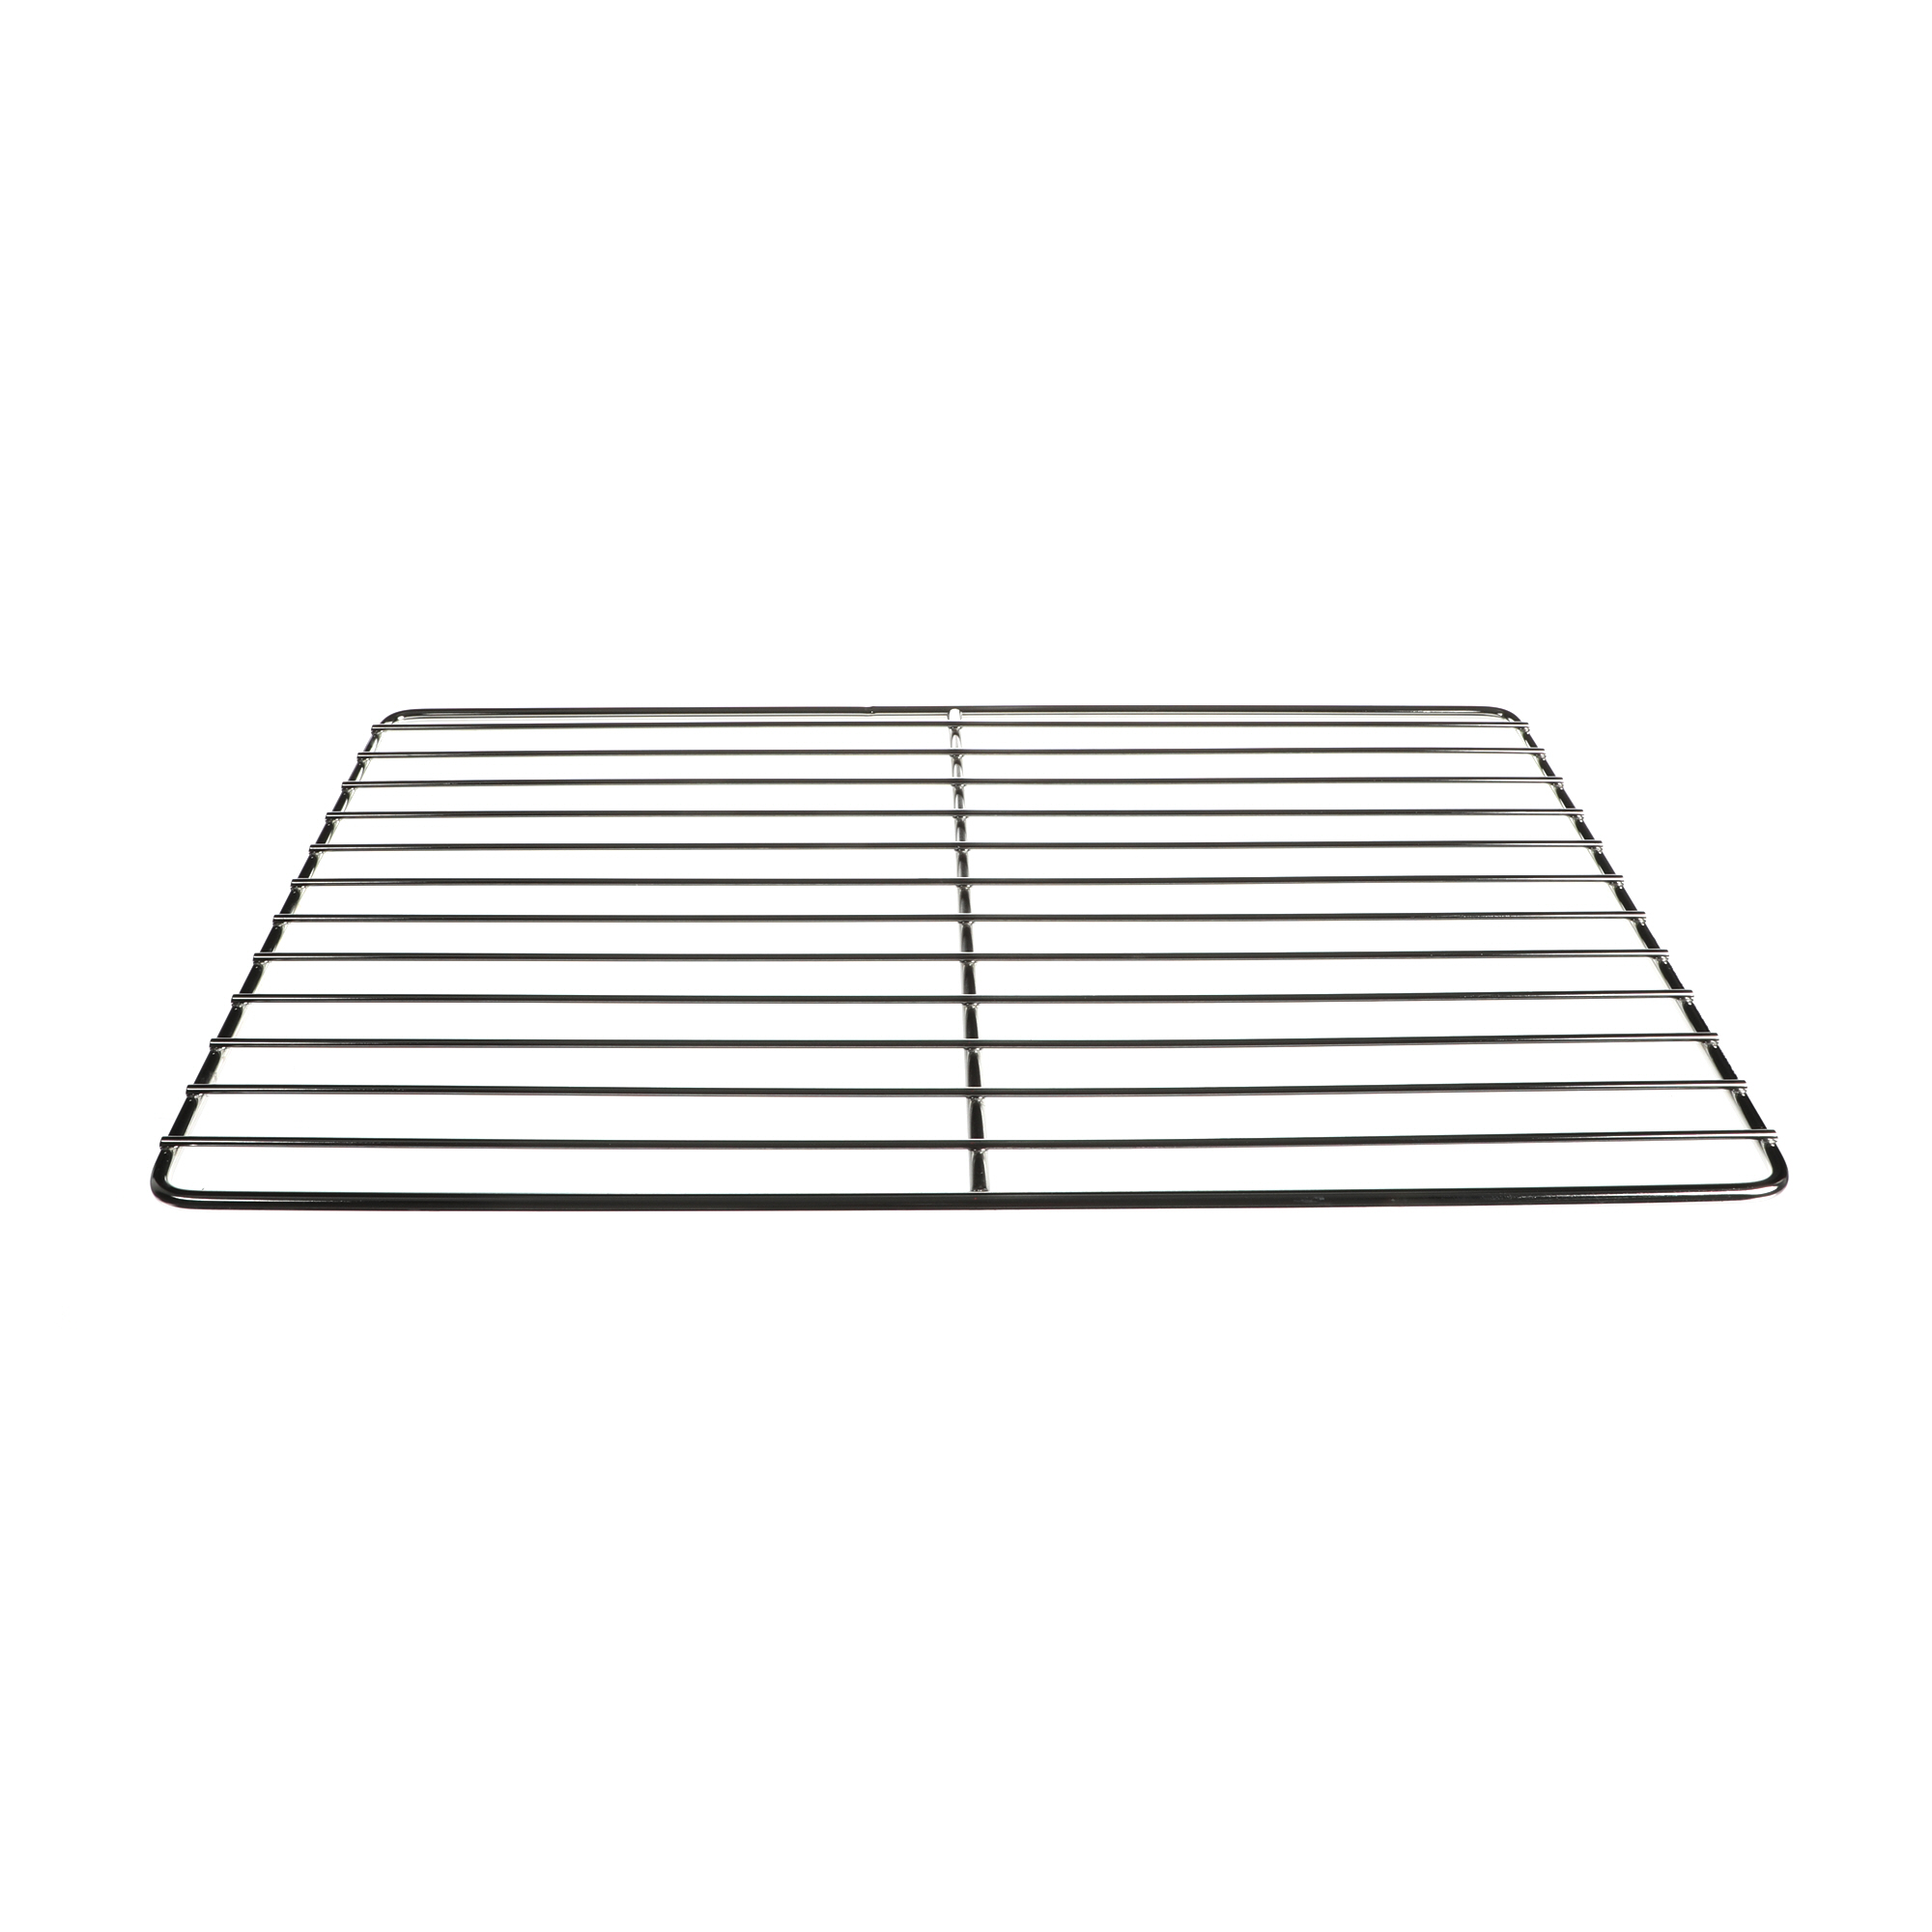 GRID, RUST-FREE STAINLESS STEEL 1/1 GN (325 x 530 mm)